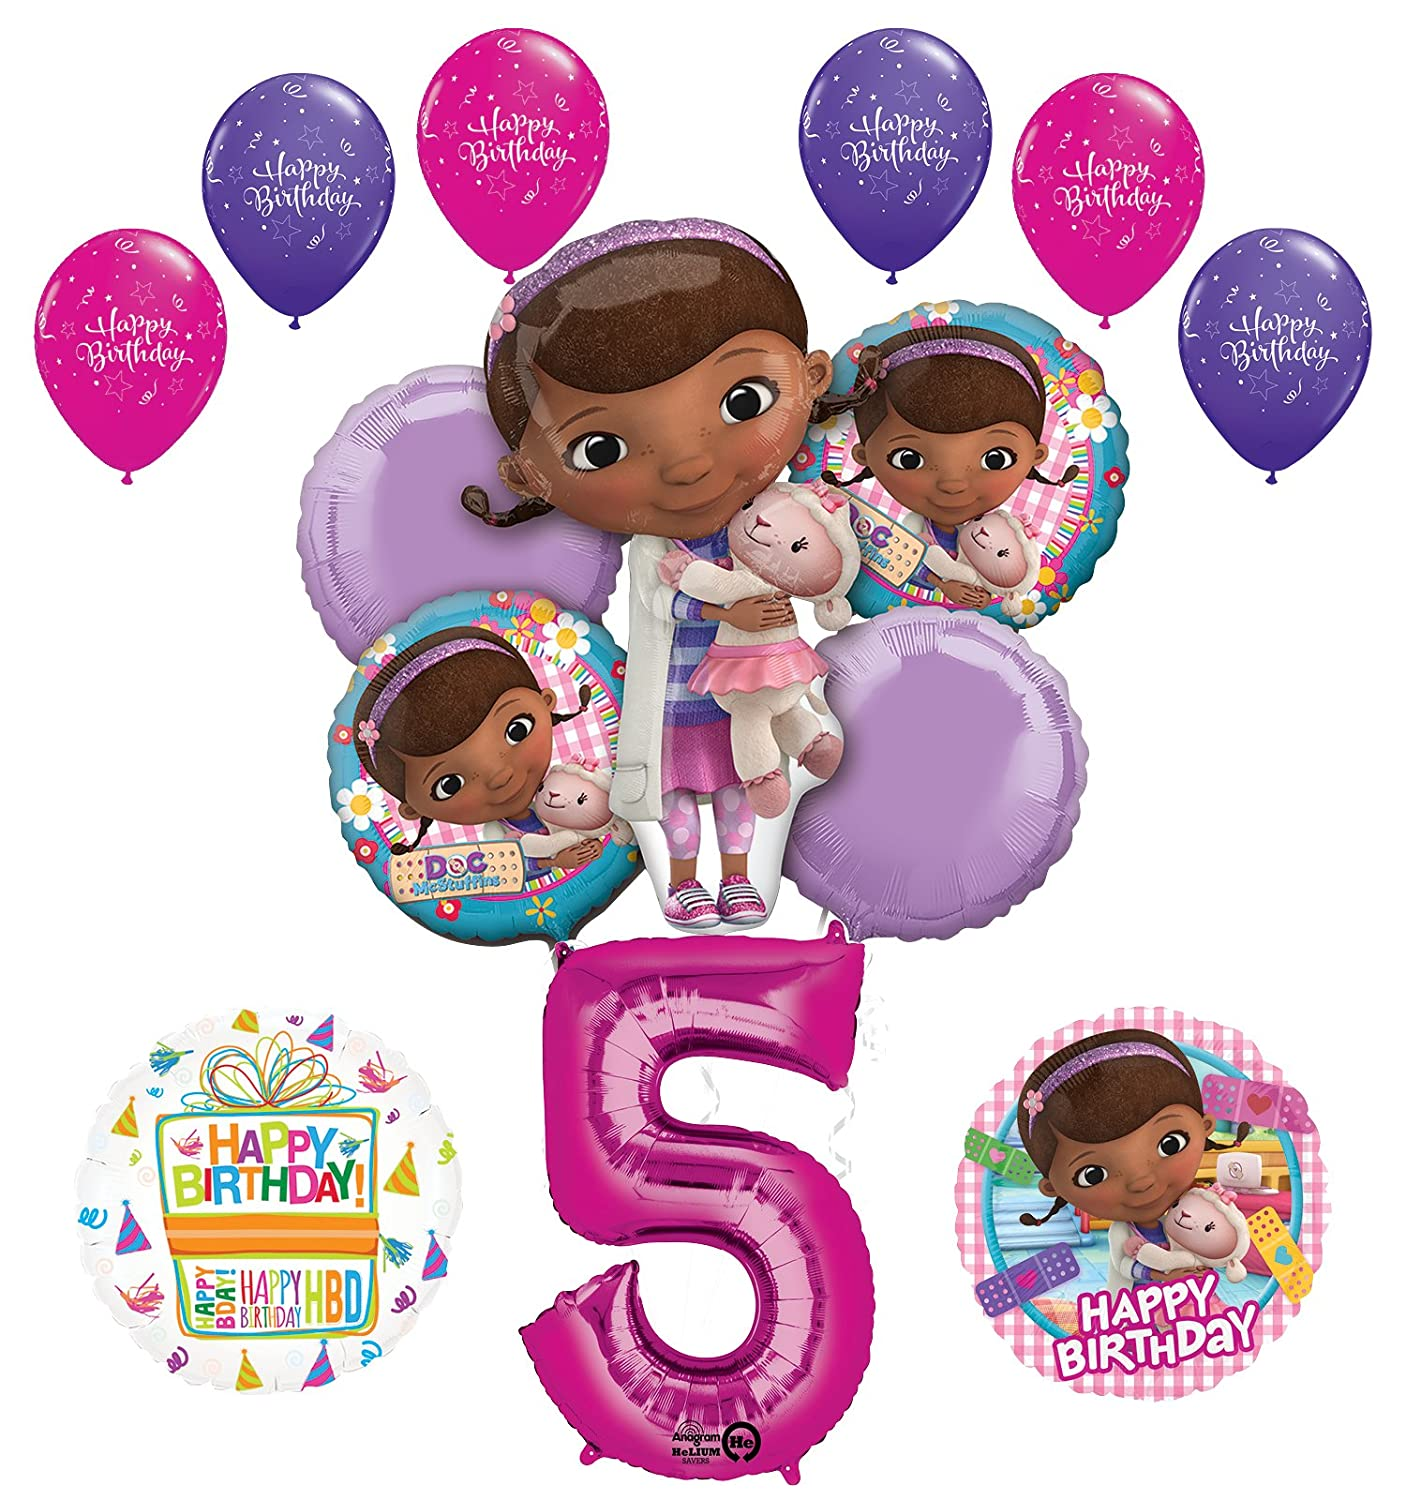 Mayflower Products Princess 1st Birthday Party Supplies Belle Balloon Bouquet Decorations